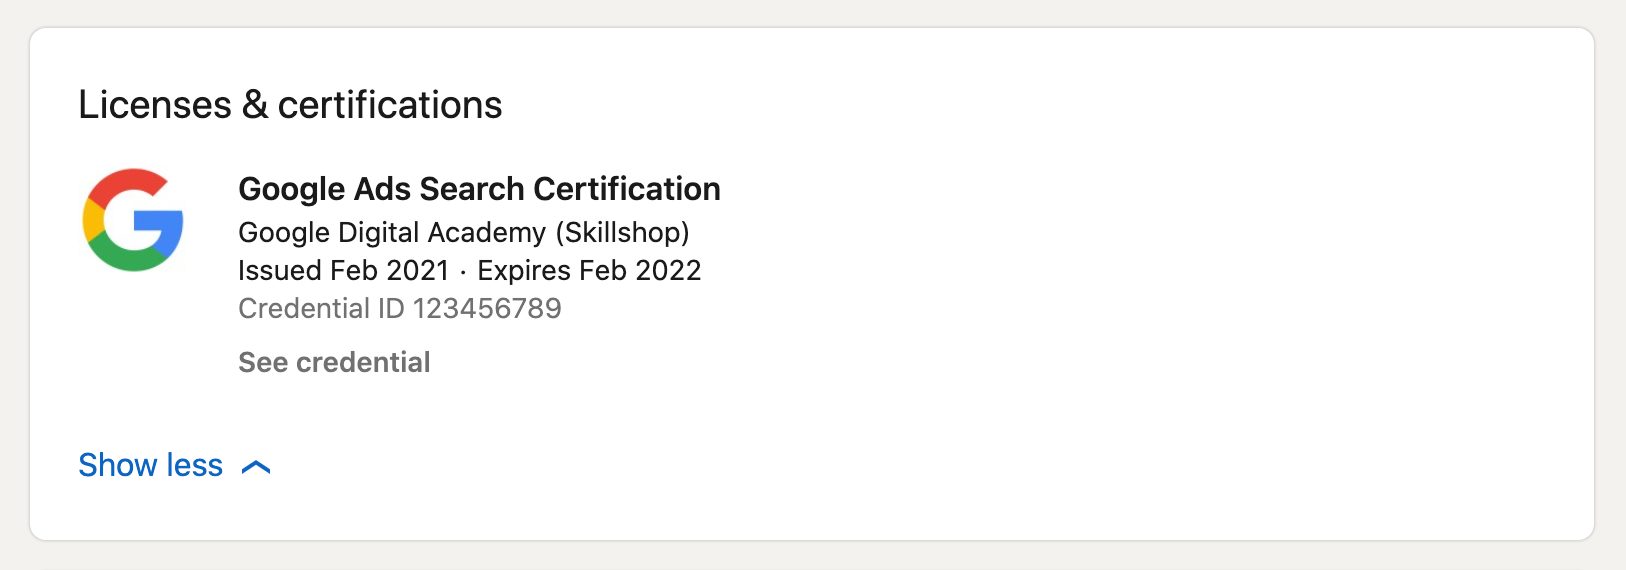 How your Google Ads certification will appear on your LinkedIn profile